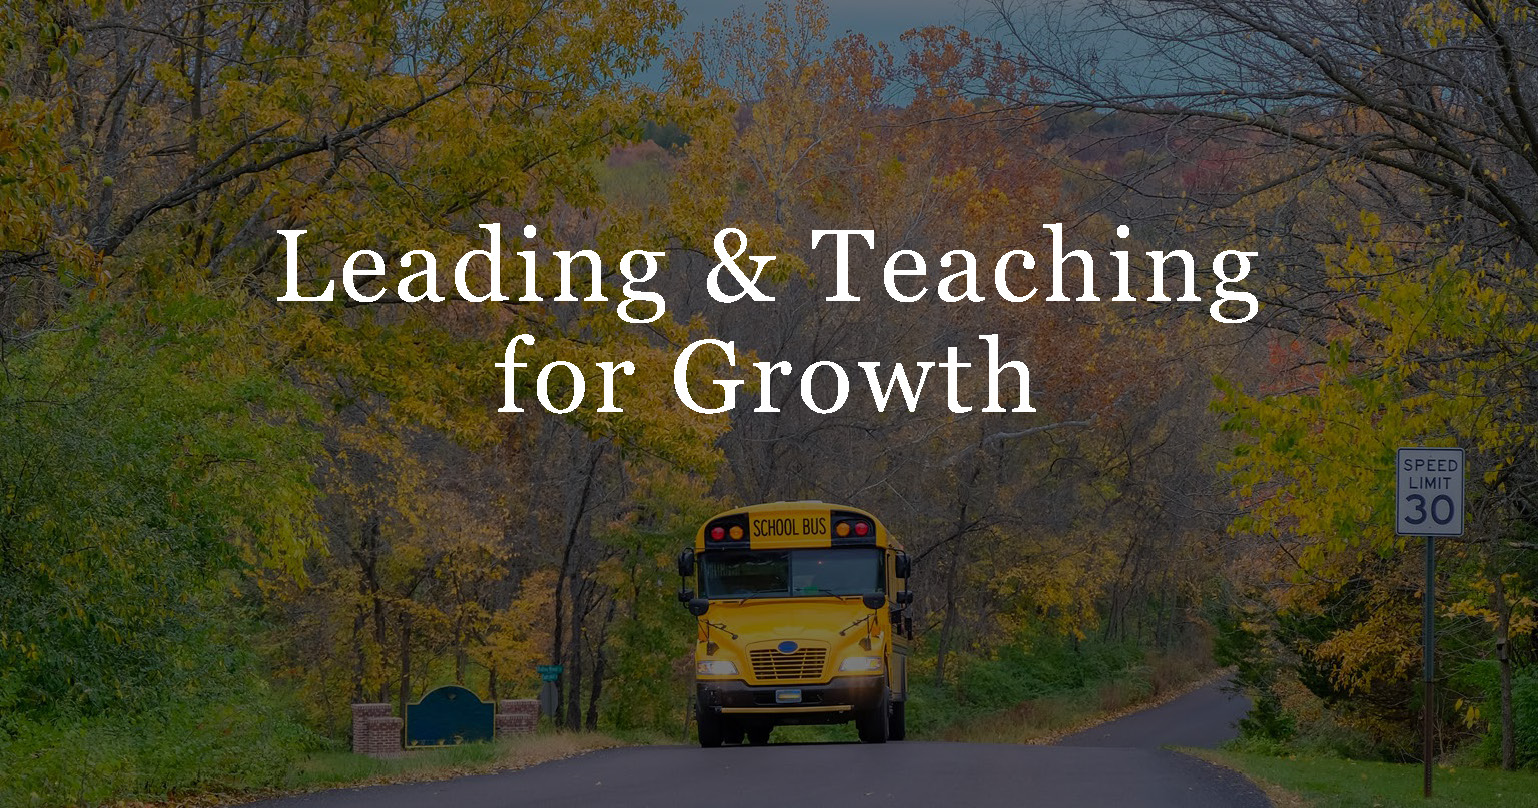 Leading & Teaching for Growth